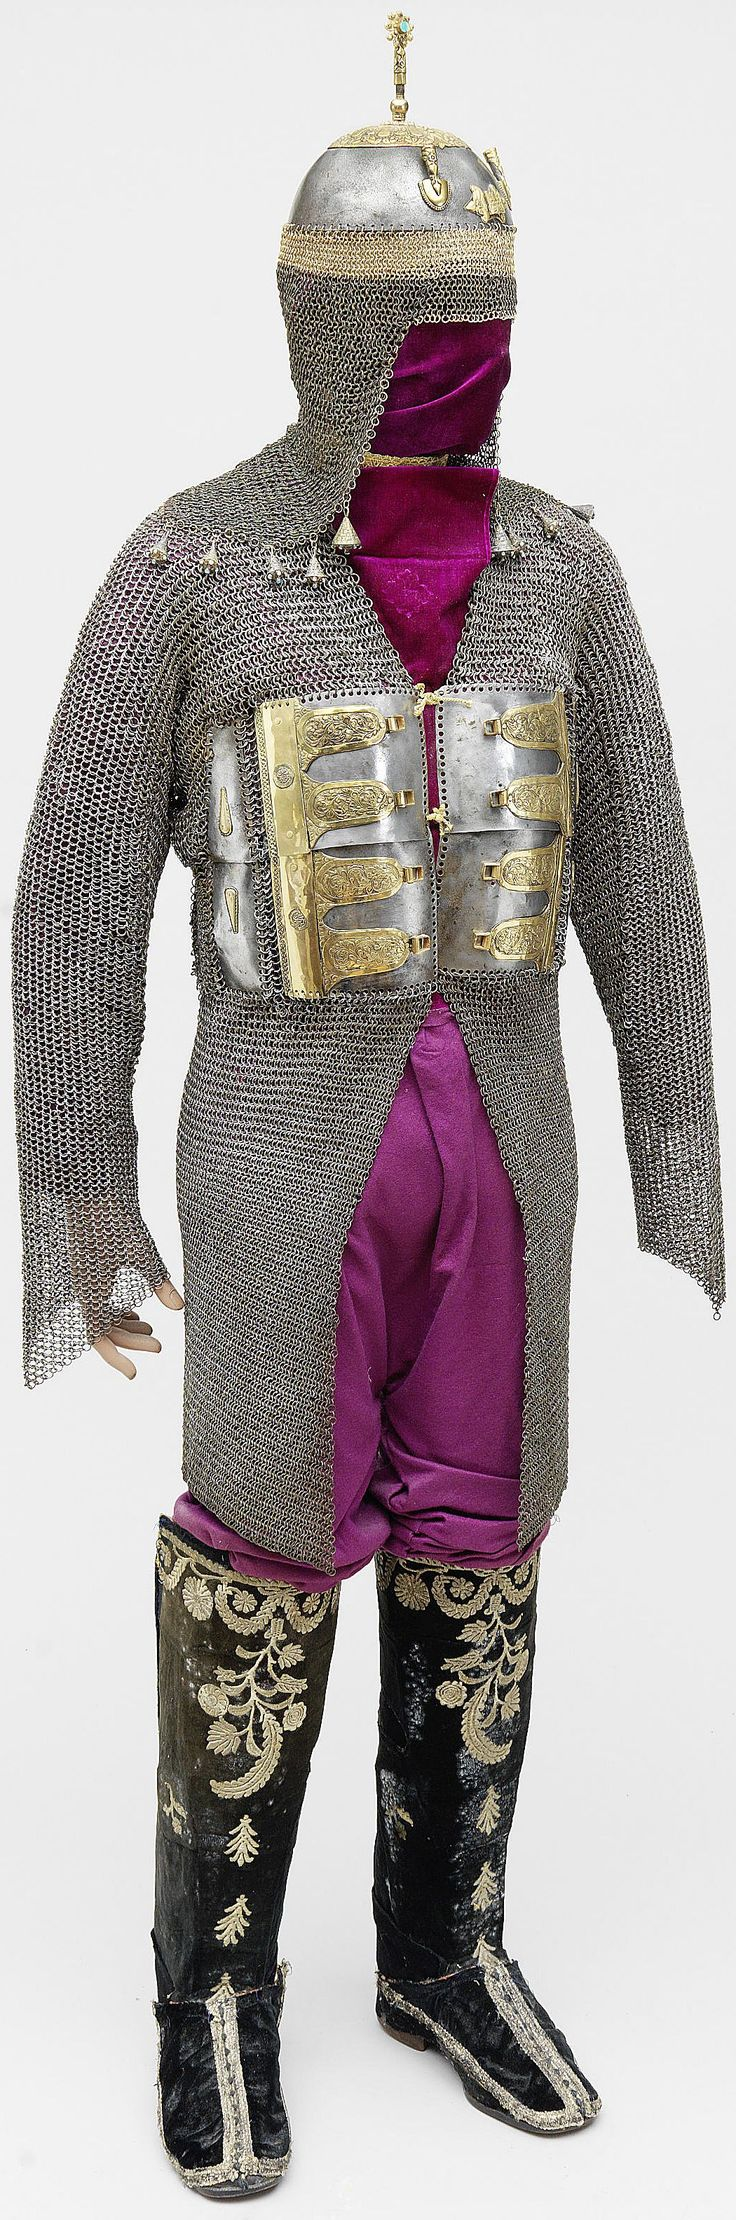 Indian (Deccan) zirah baktar (mail and plate armour shirt) 100 cm long, 17th Century, a long-sleeved mail shirt with seven frontal plates embellished with gilt mounts and four small inscription medallions, the back with five vertical rows of miniature plaques, khula-khud (helmet) and a pair of Ottoman 19th century embroidered velvet boots.